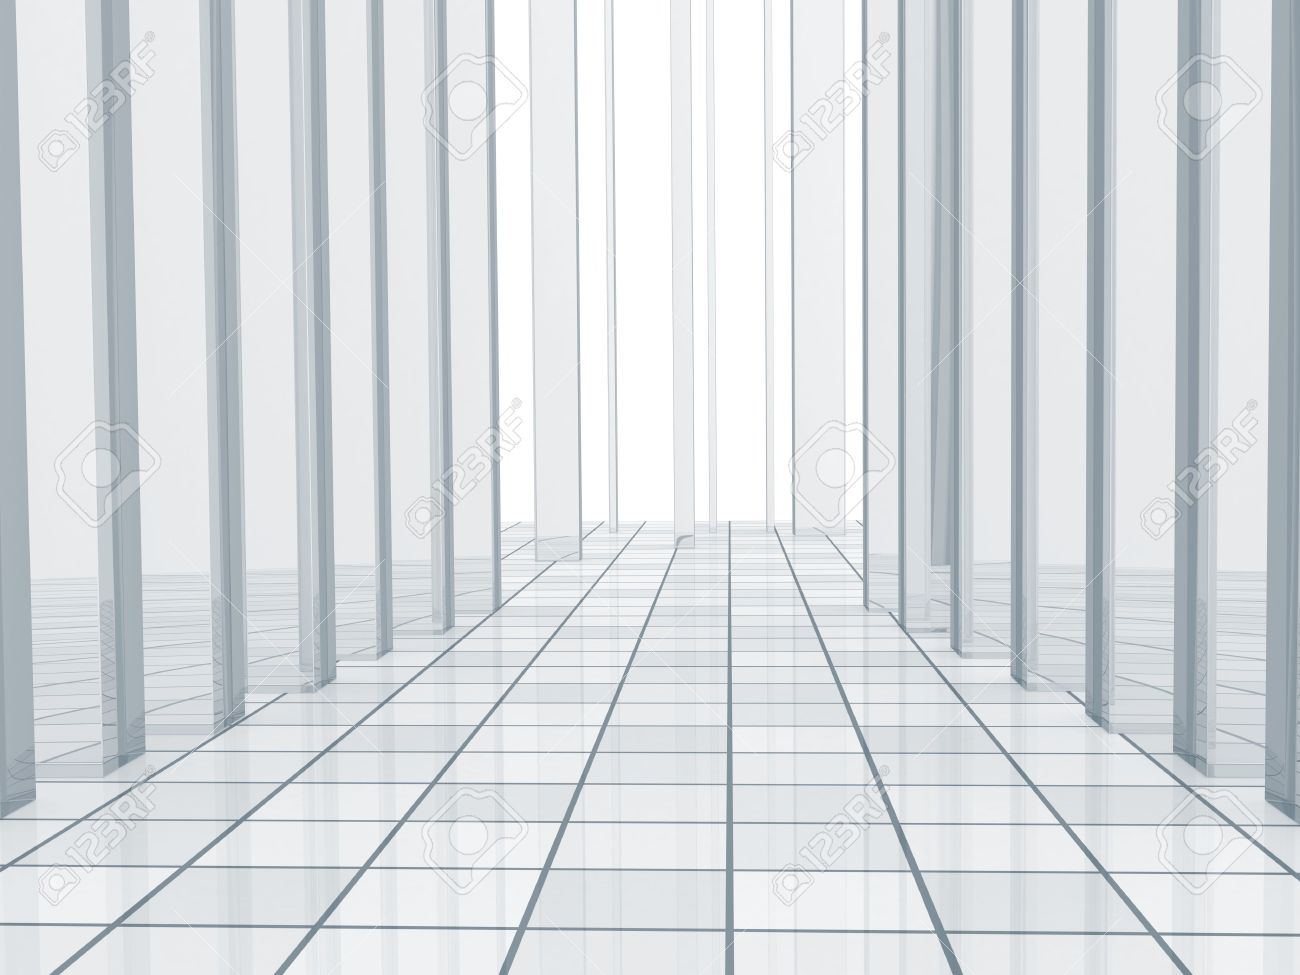 Abstract Blue Background With Columns And A Tiled Floor Stock 1300x975